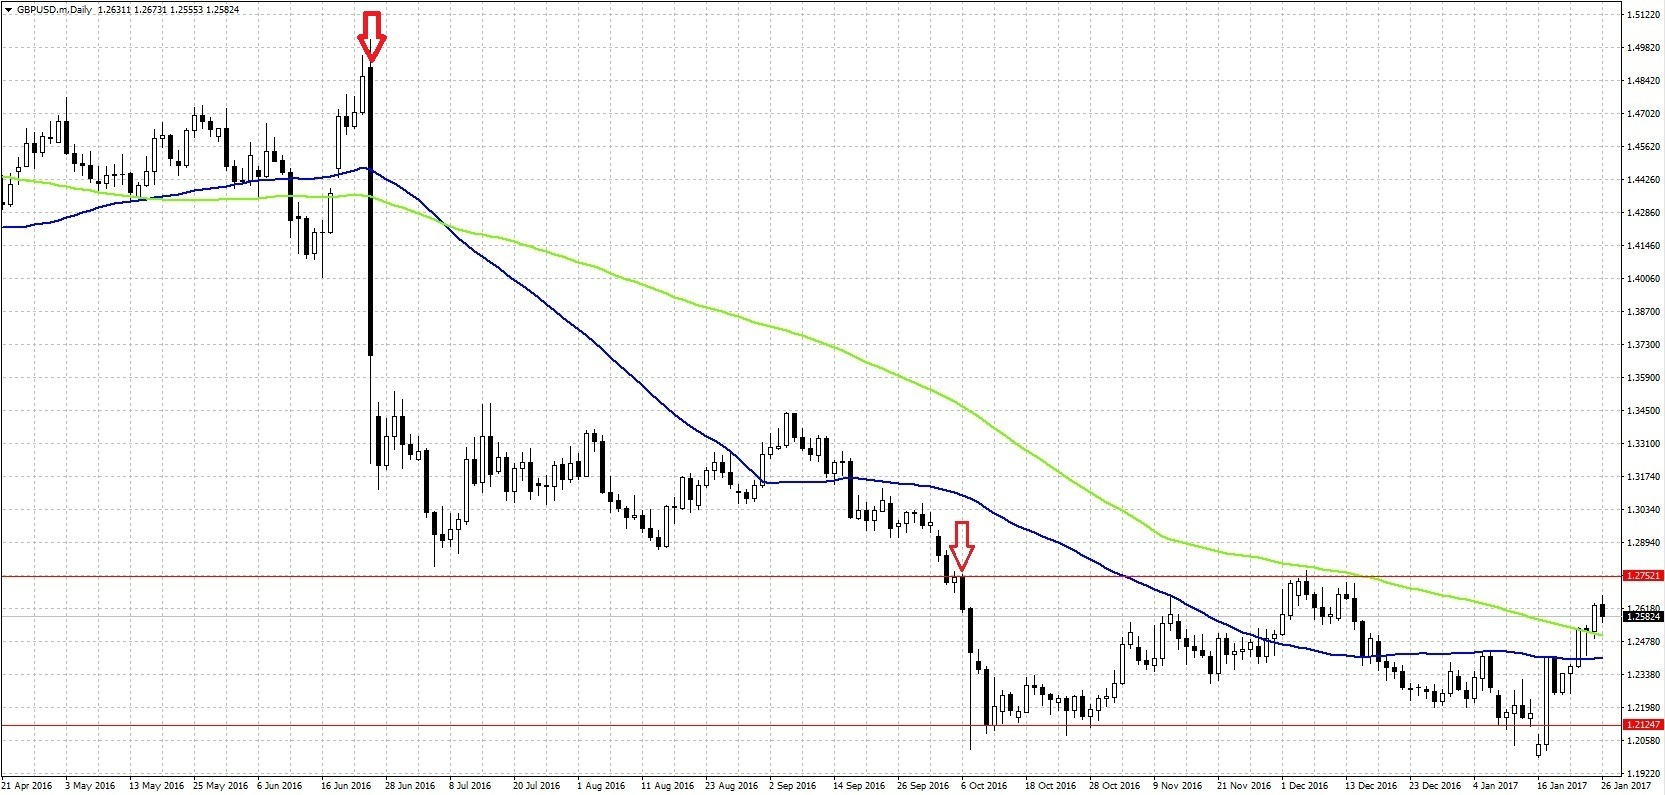 gbp-usd daily